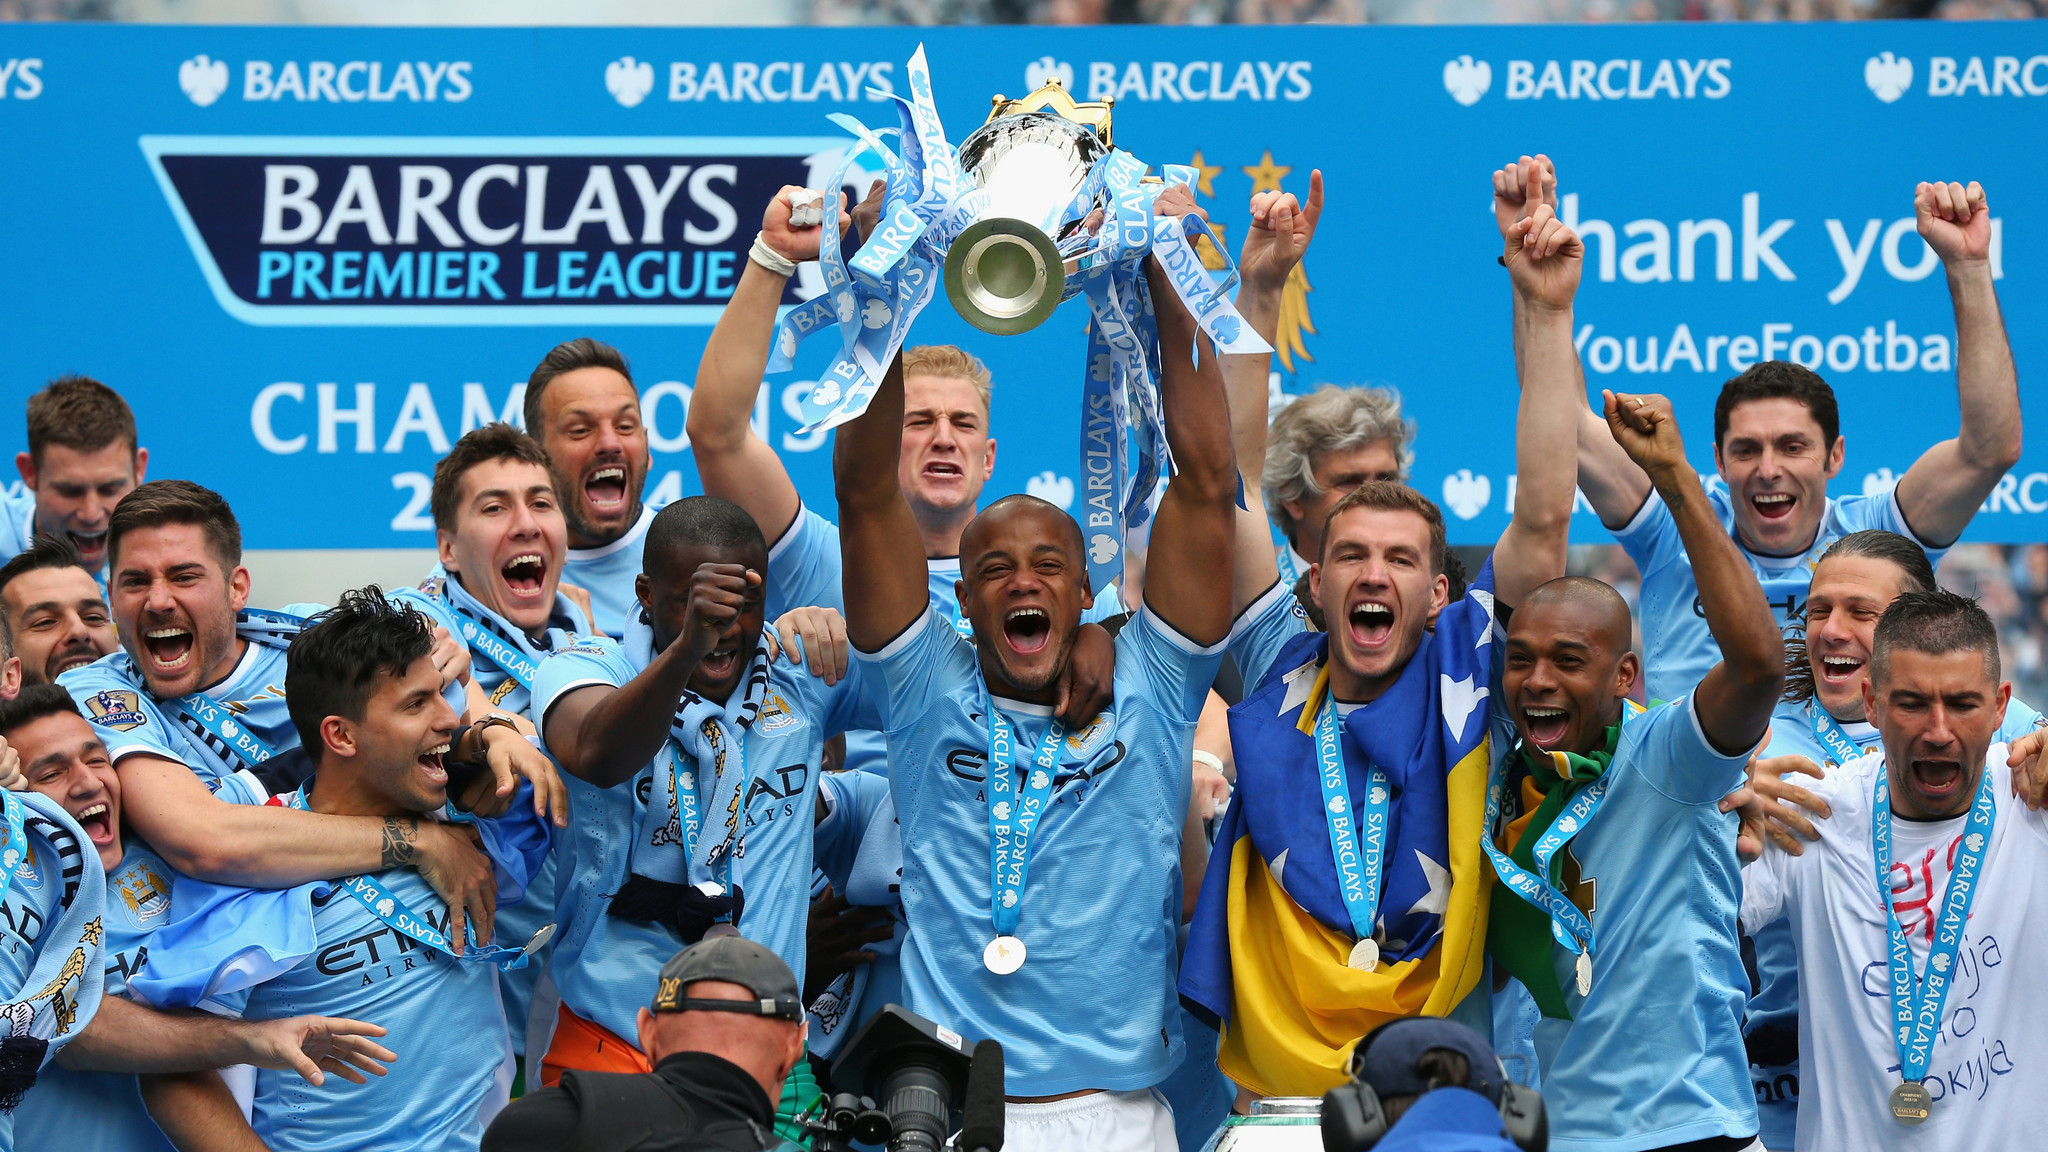 Man City Wins Championship - LA Times